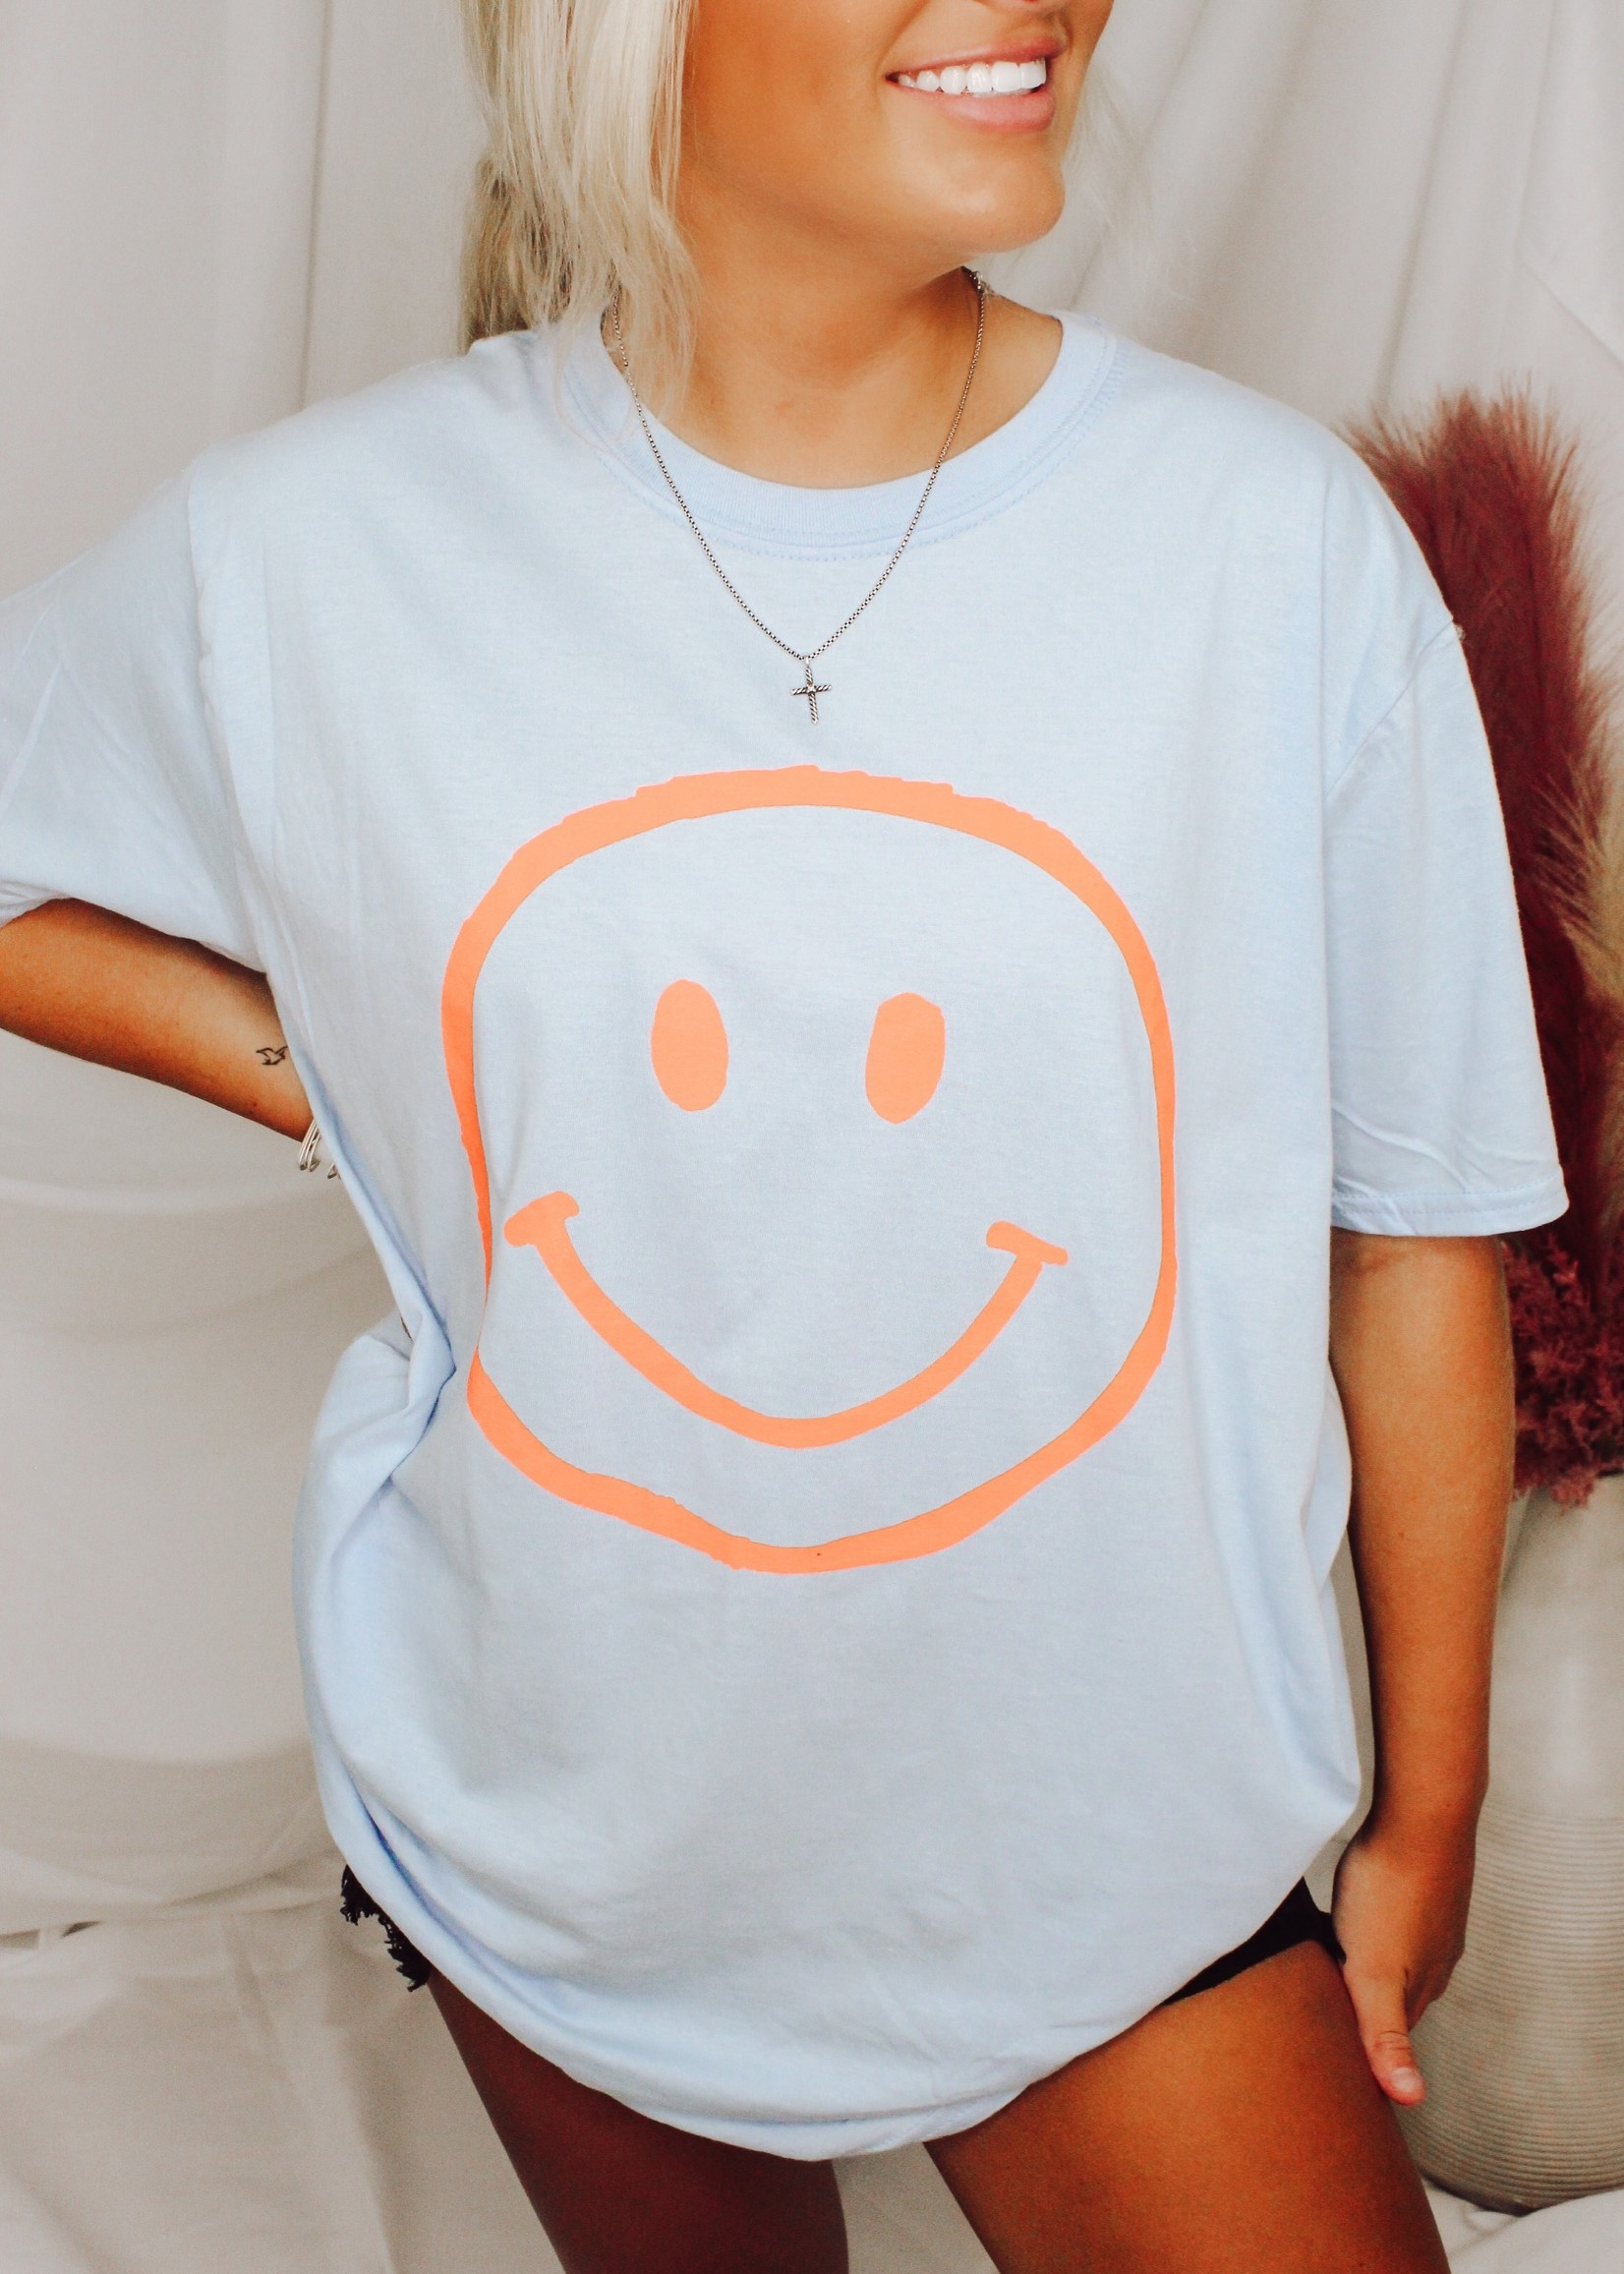 Oversized Smiley Face Graphic Tee